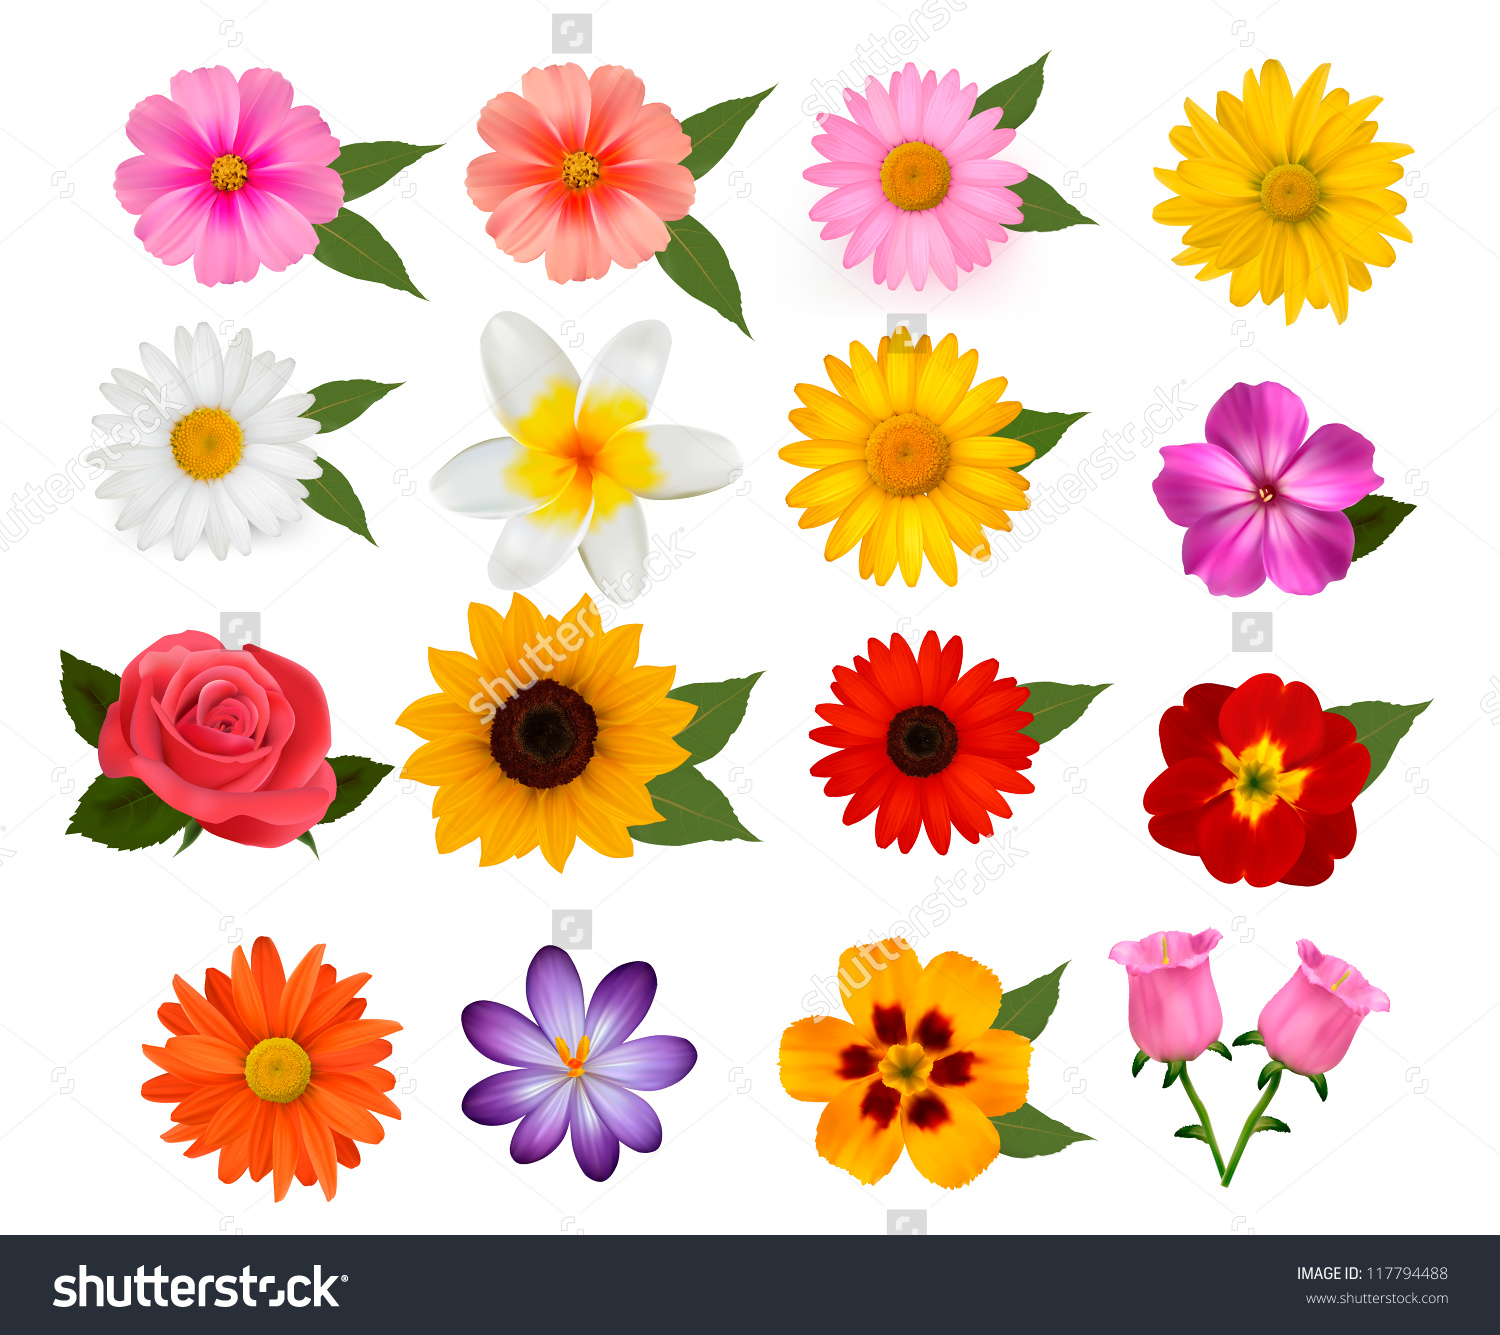 Picture of colorful flowers vector library download Big Beautiful Colorful Flowers Vector Illustration Stock Vector ... vector library download